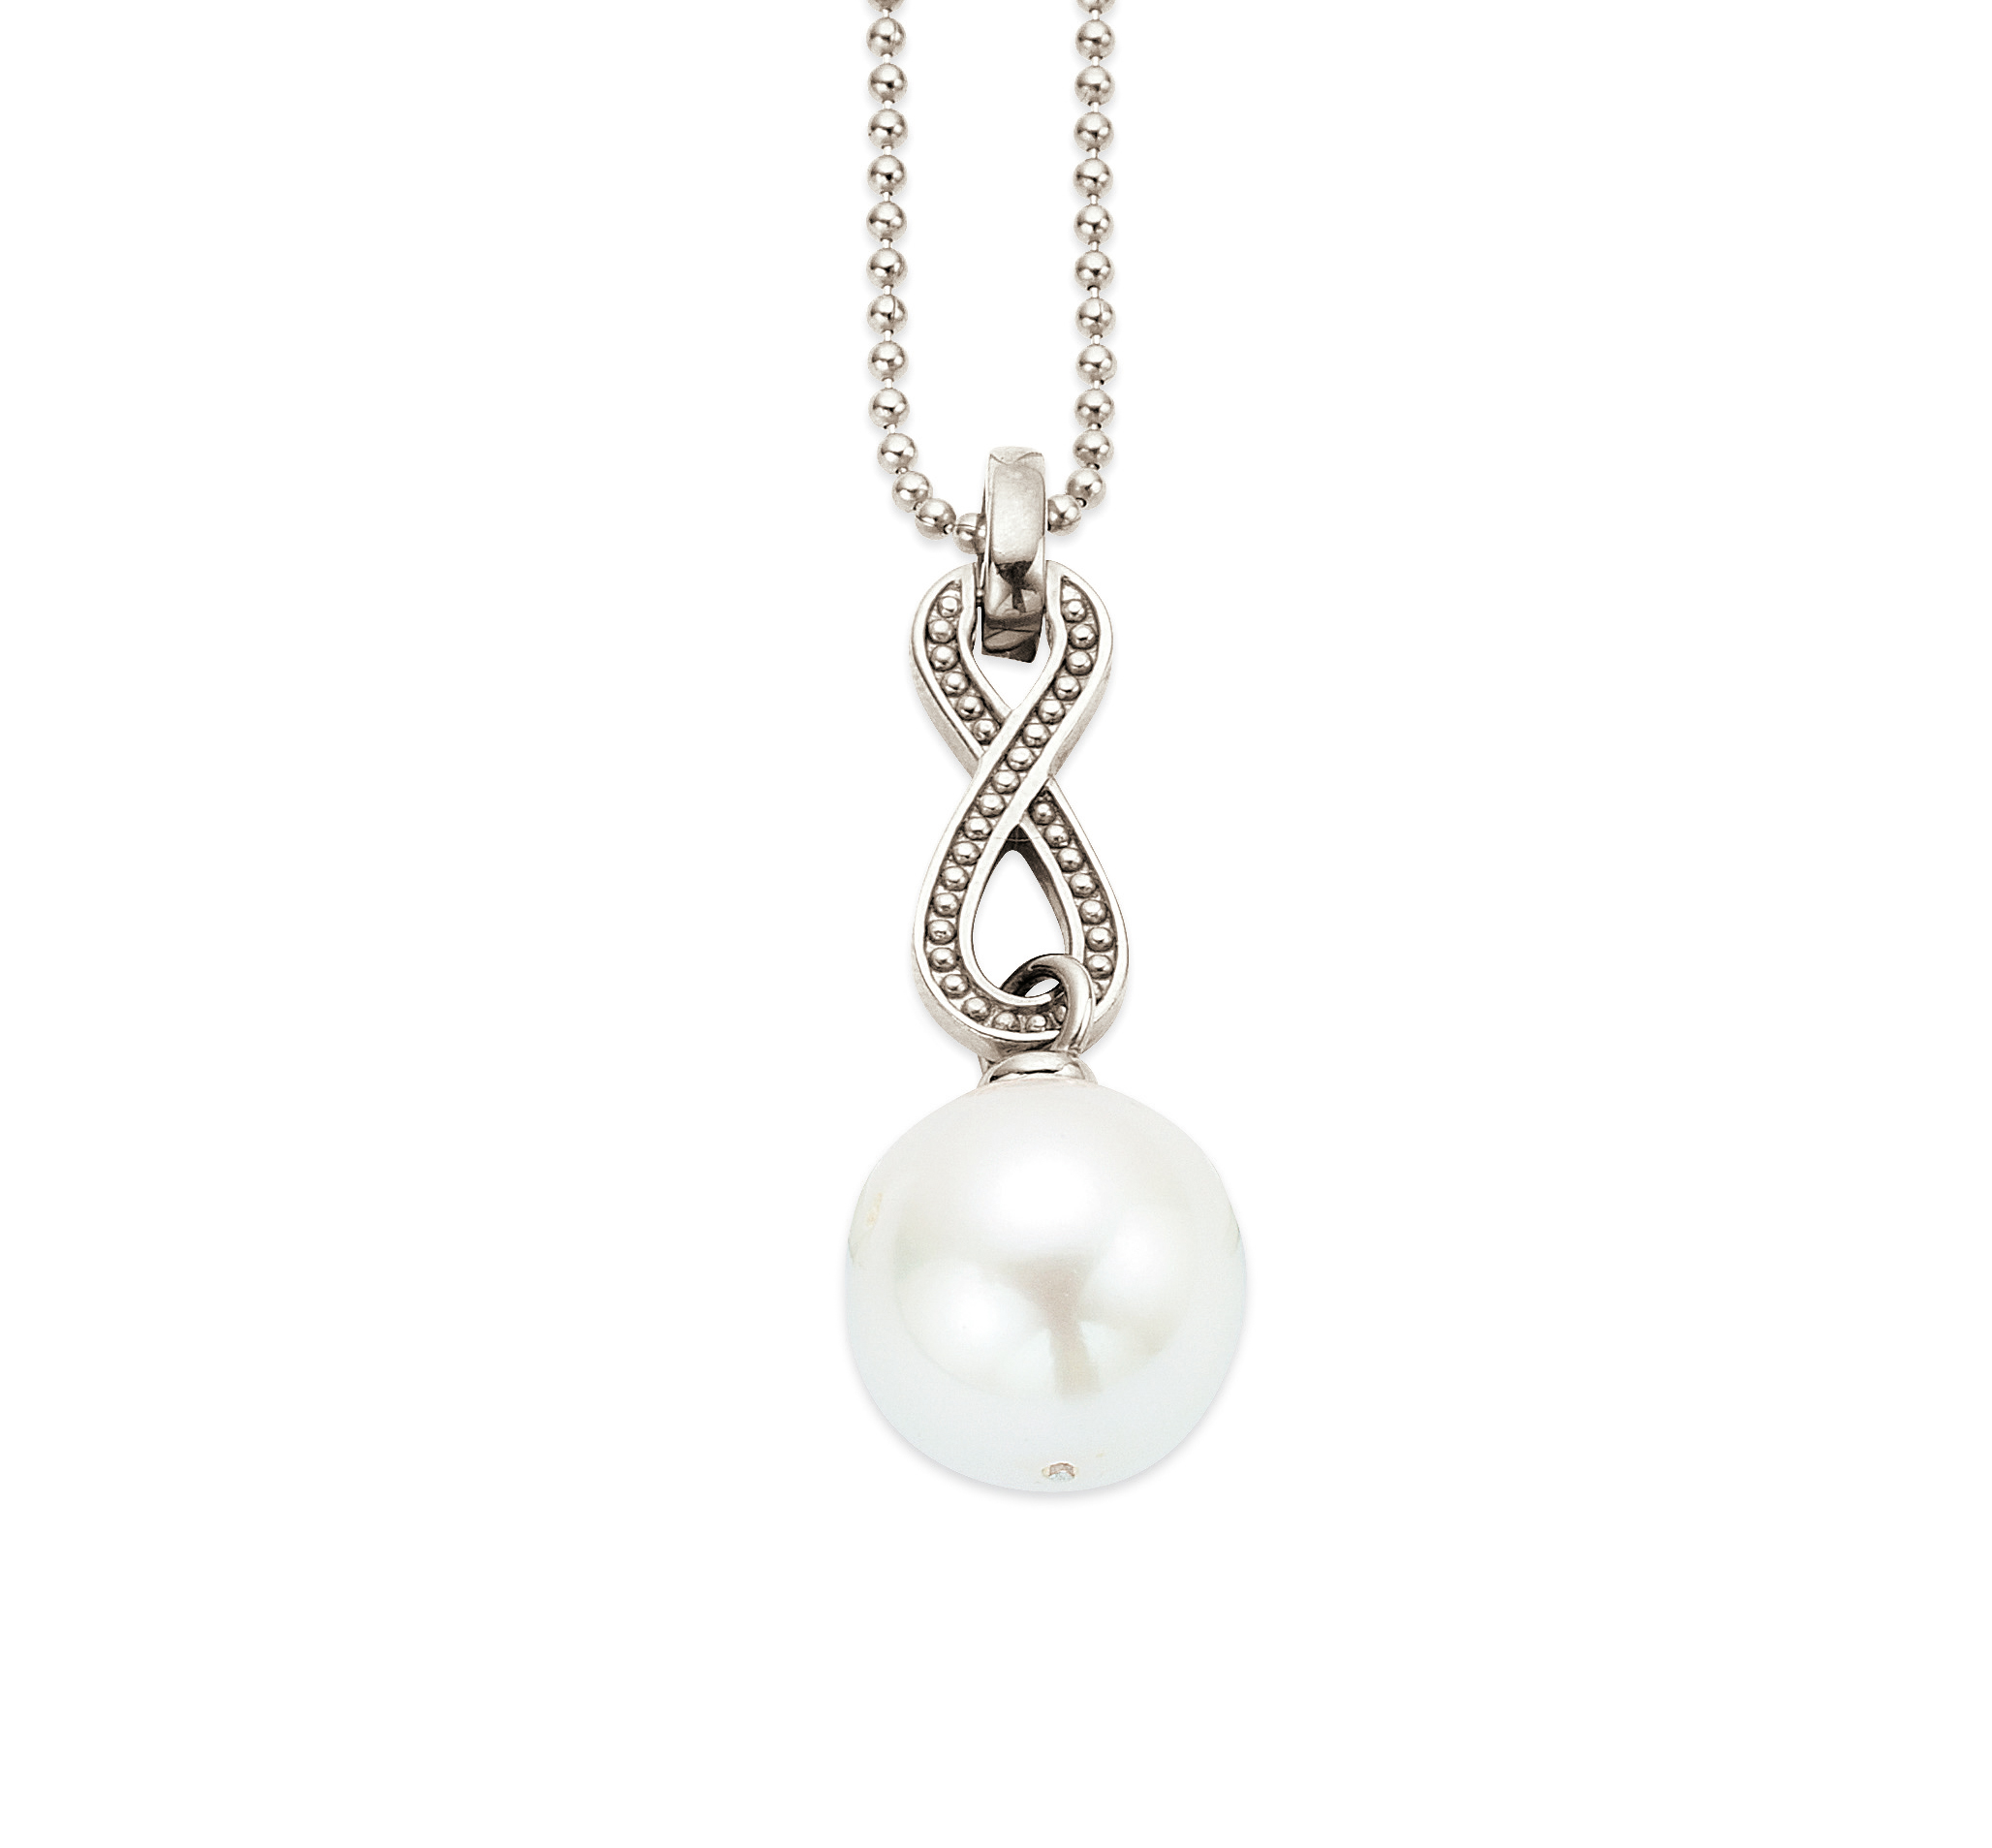 wempe sea rose brands en porter a jewelry south cultured anhnger pret pendant gold pearl perlen